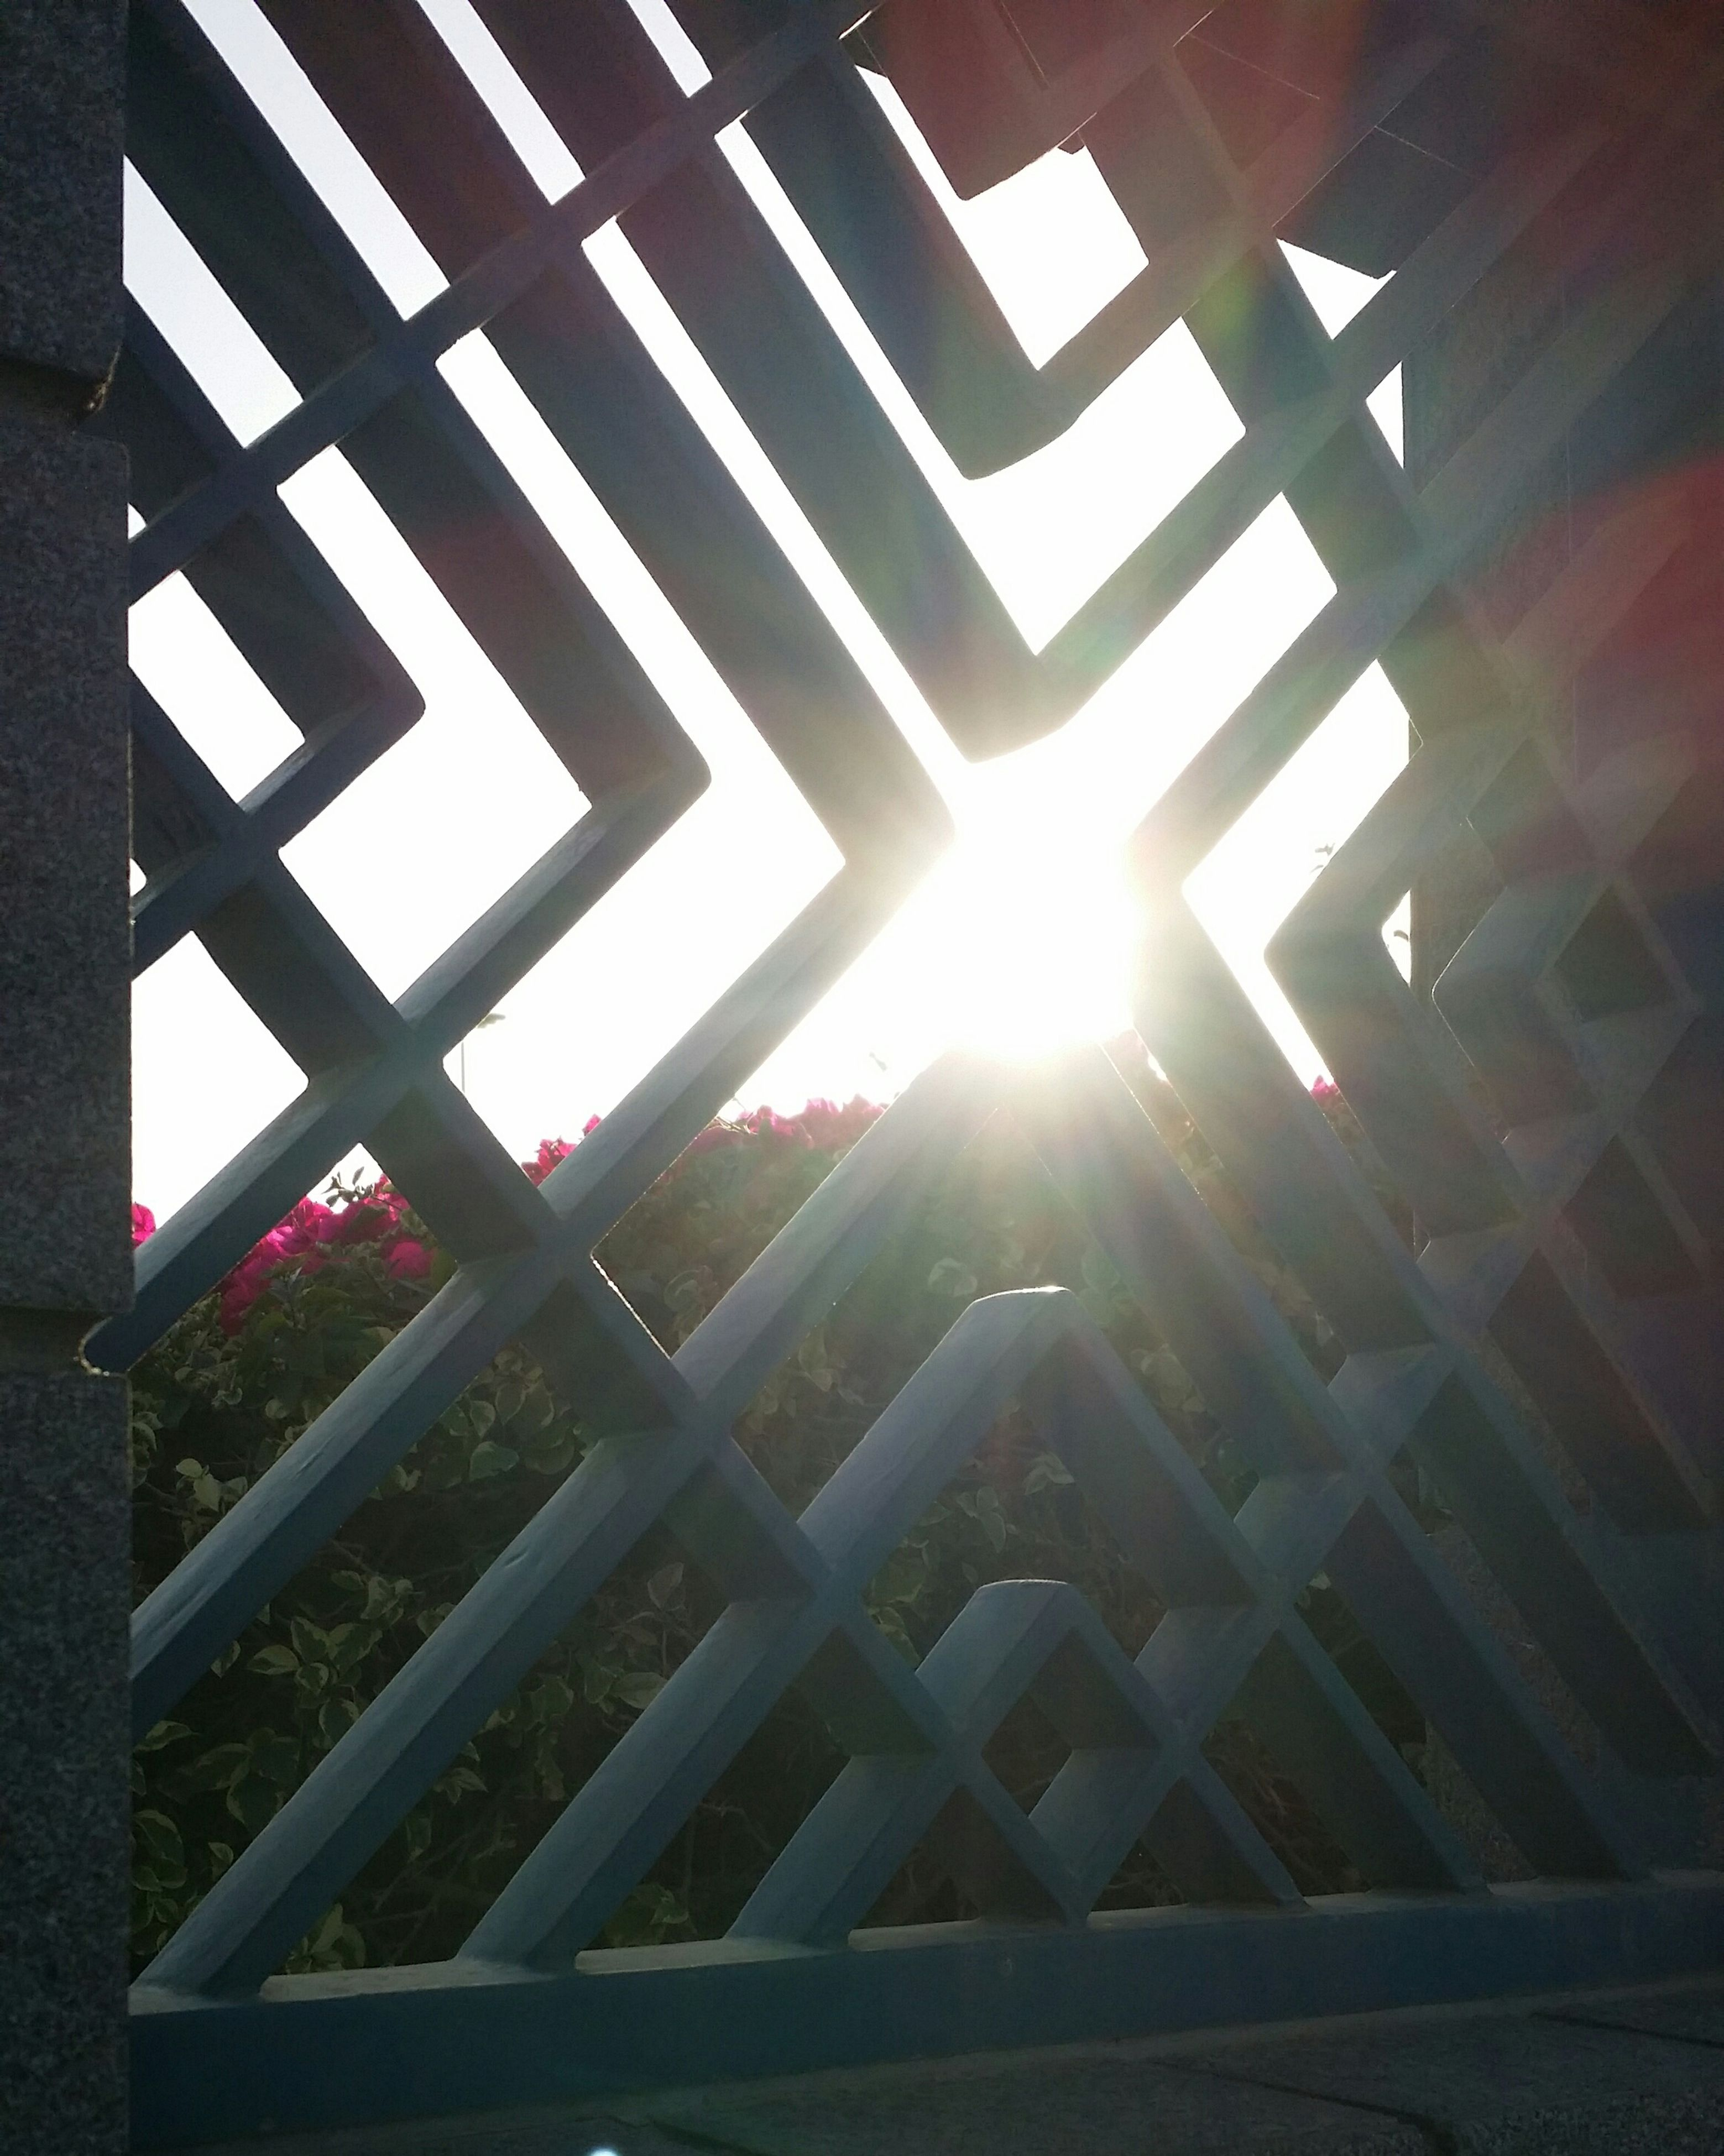 sun, sunlight, sunbeam, lens flare, built structure, shadow, architecture, low angle view, indoors, sunny, sunset, railing, pattern, no people, day, bright, building exterior, wood - material, steps